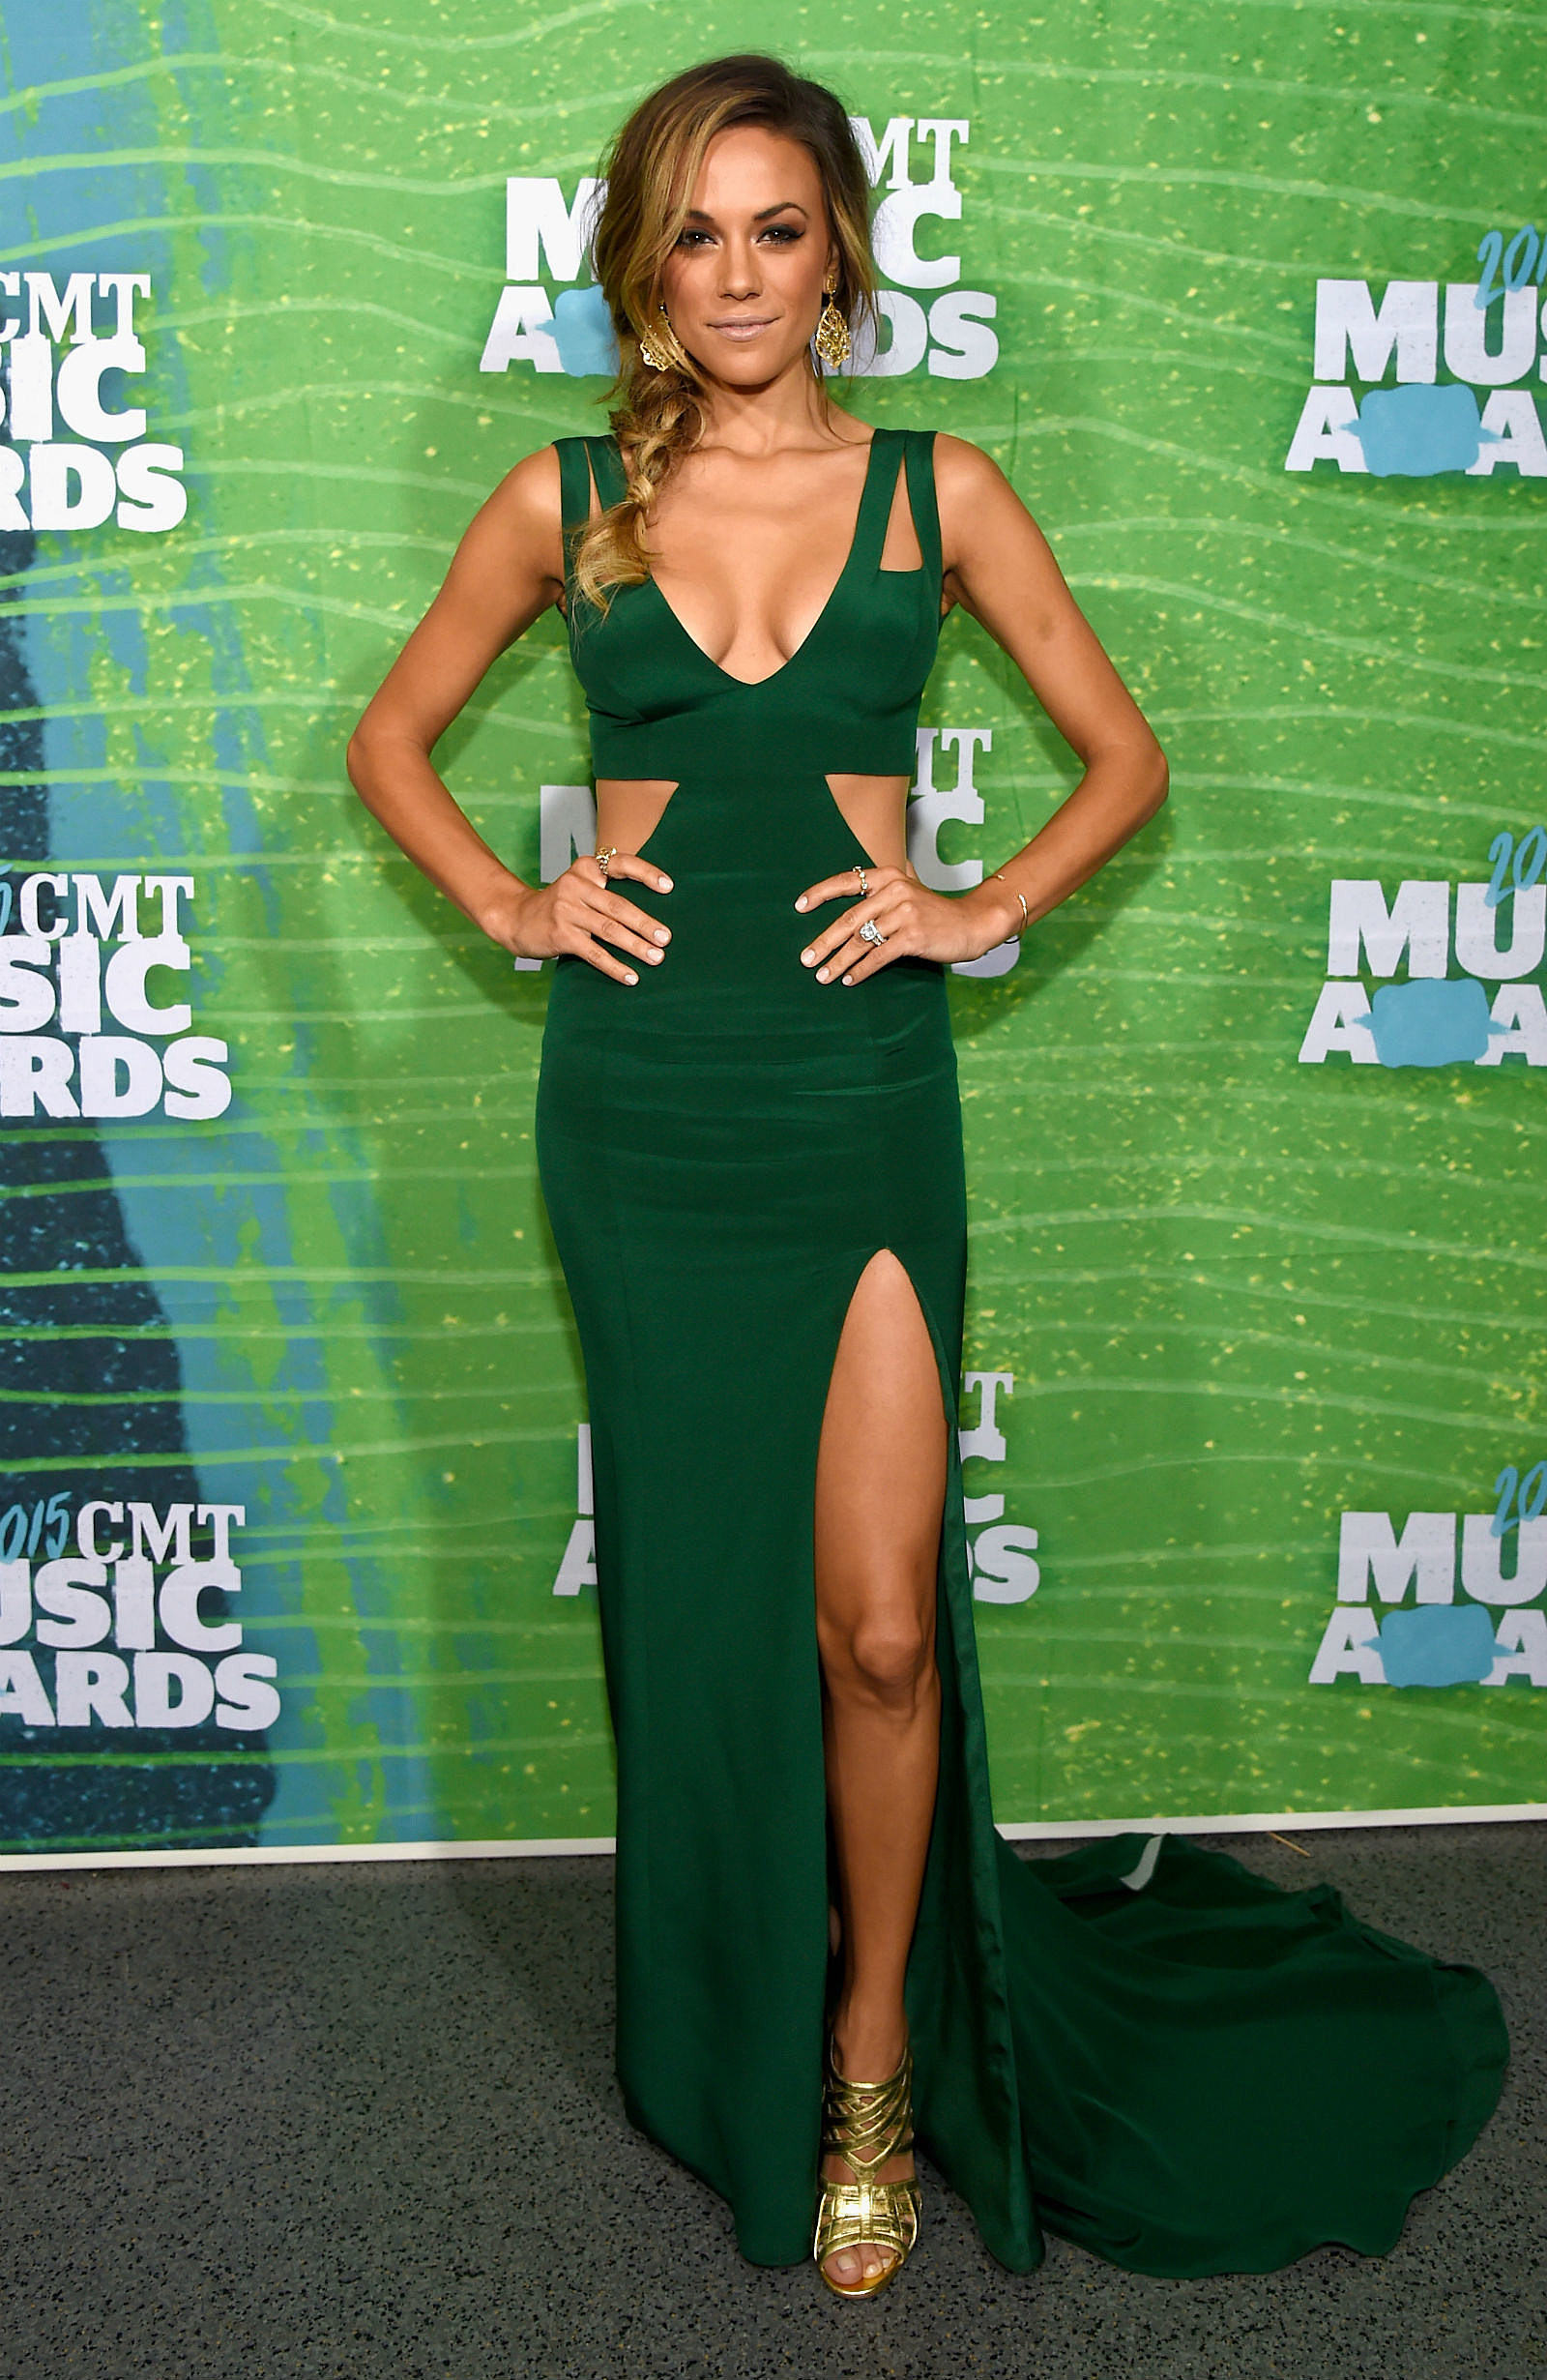 Jana kramer dress that